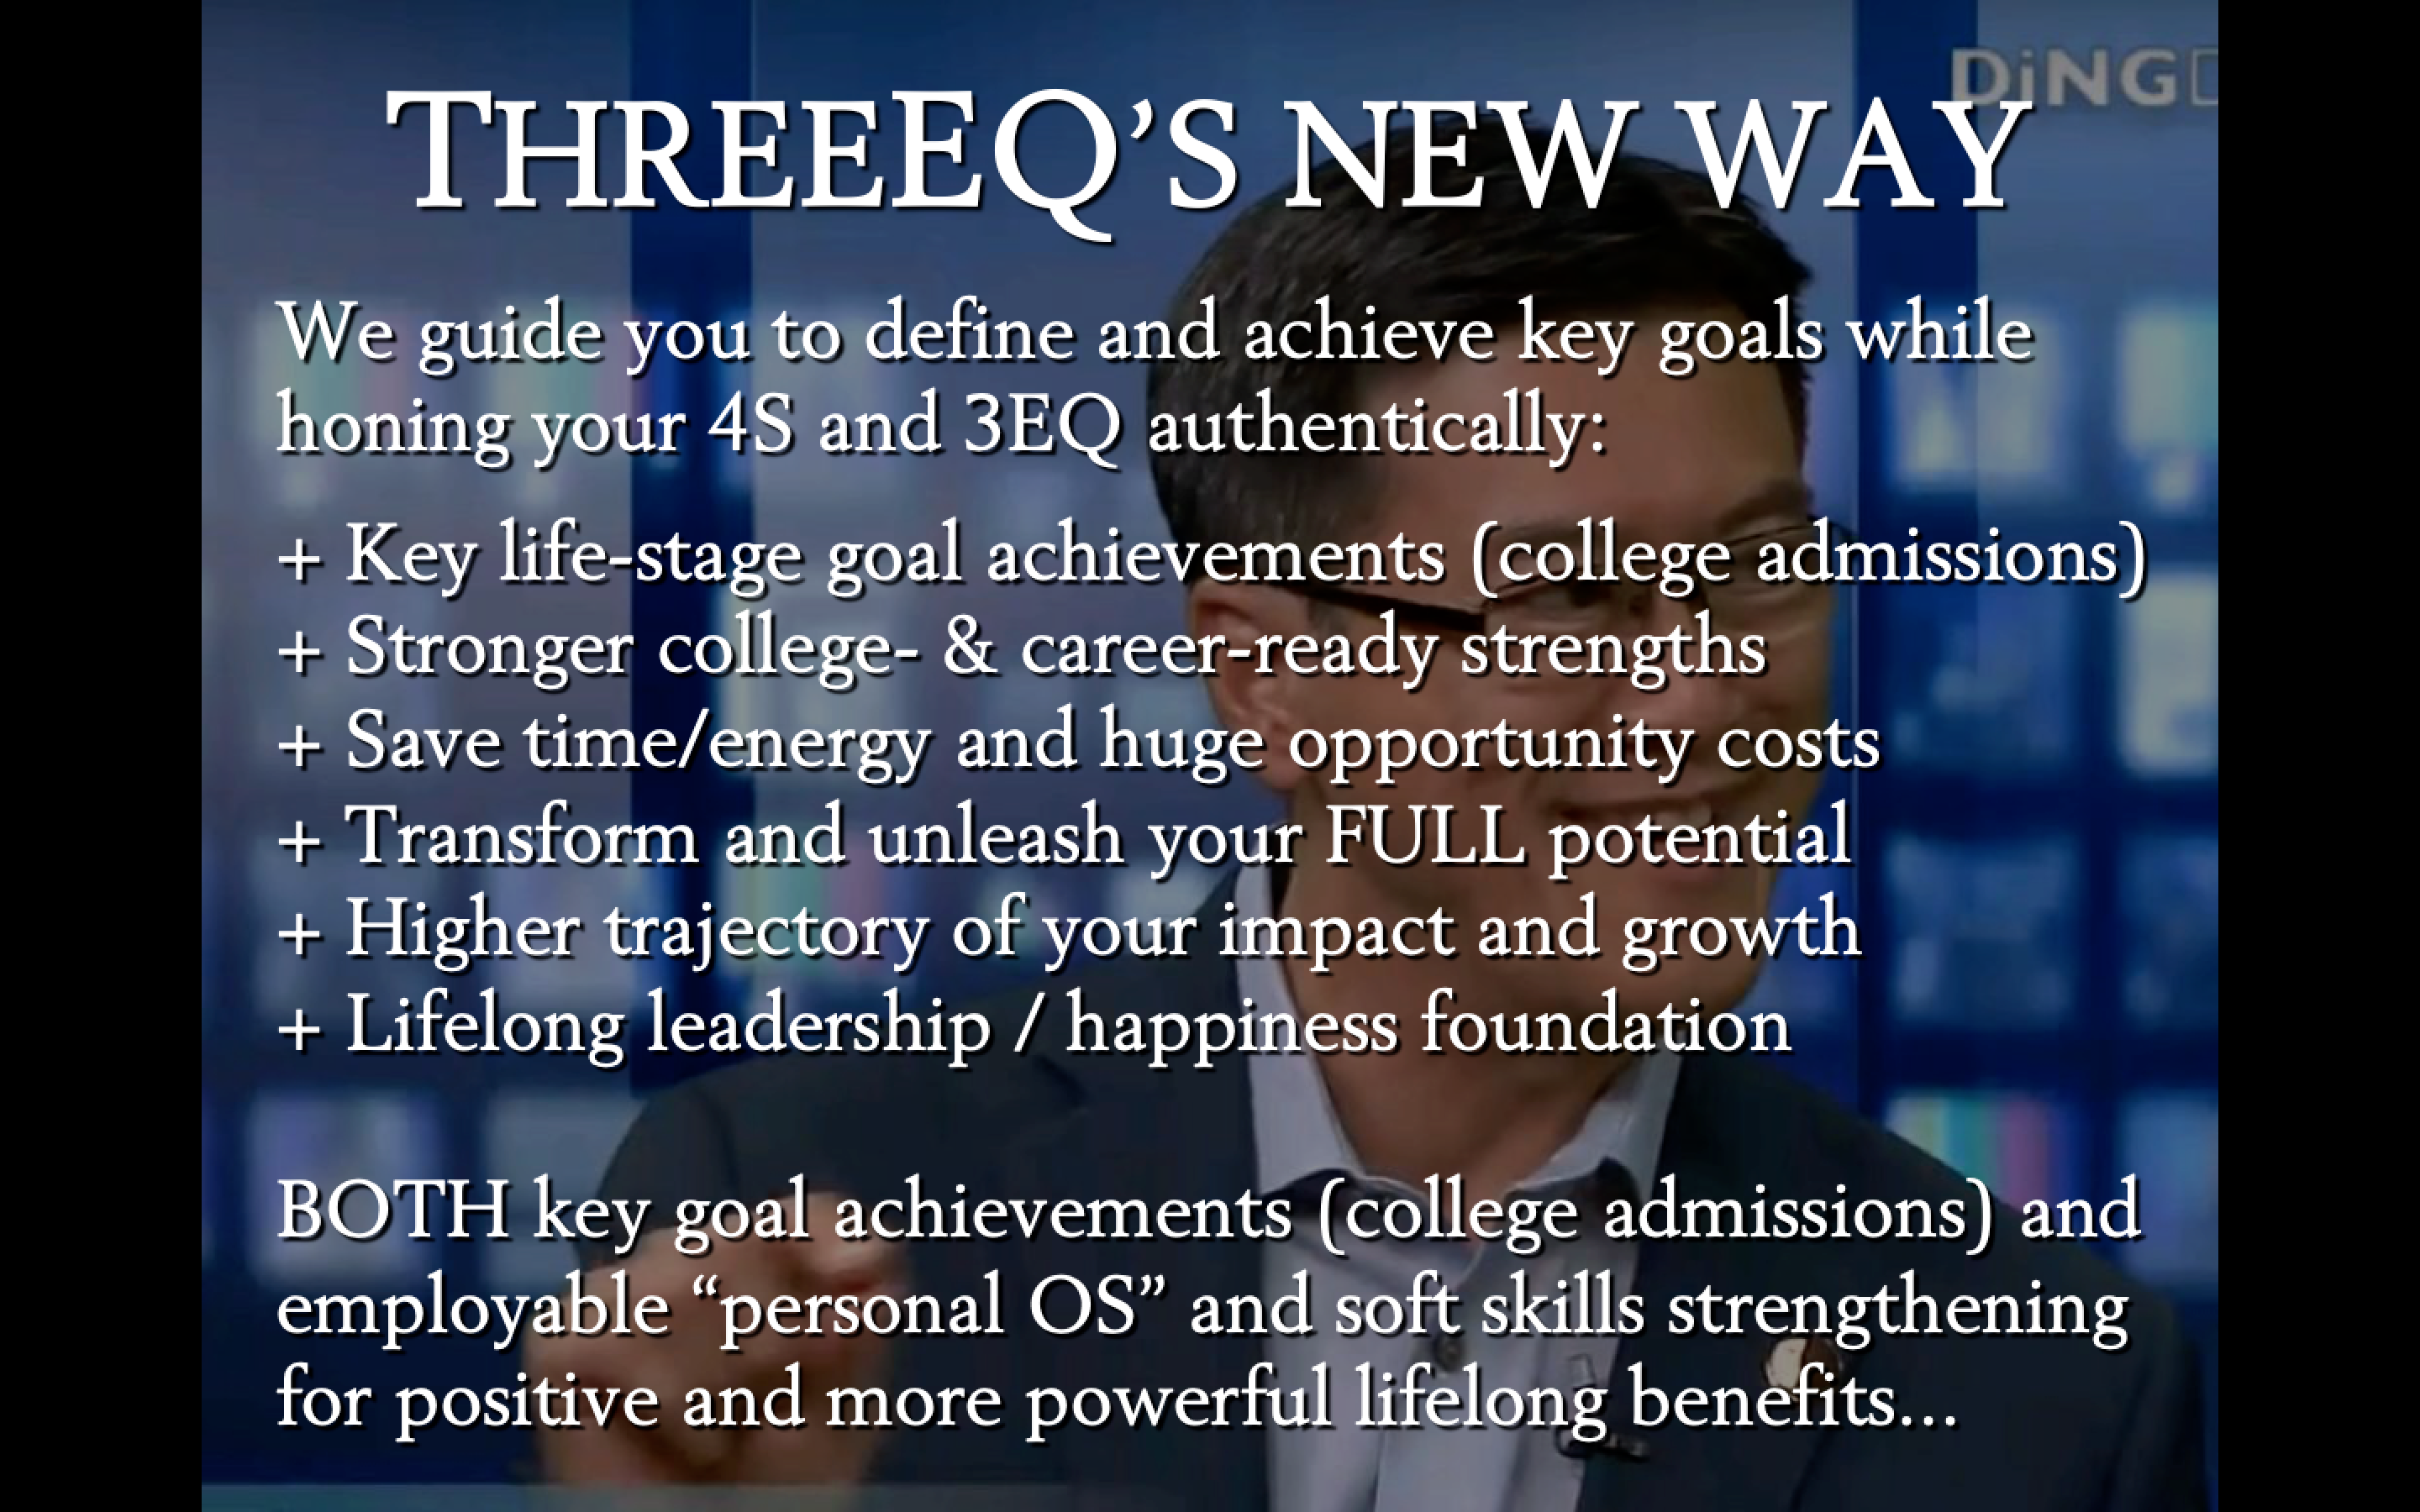 Business - Secondary School Advisors | ThreeEQ - Elite College Admissions, Career, and Life Coach and Mentor